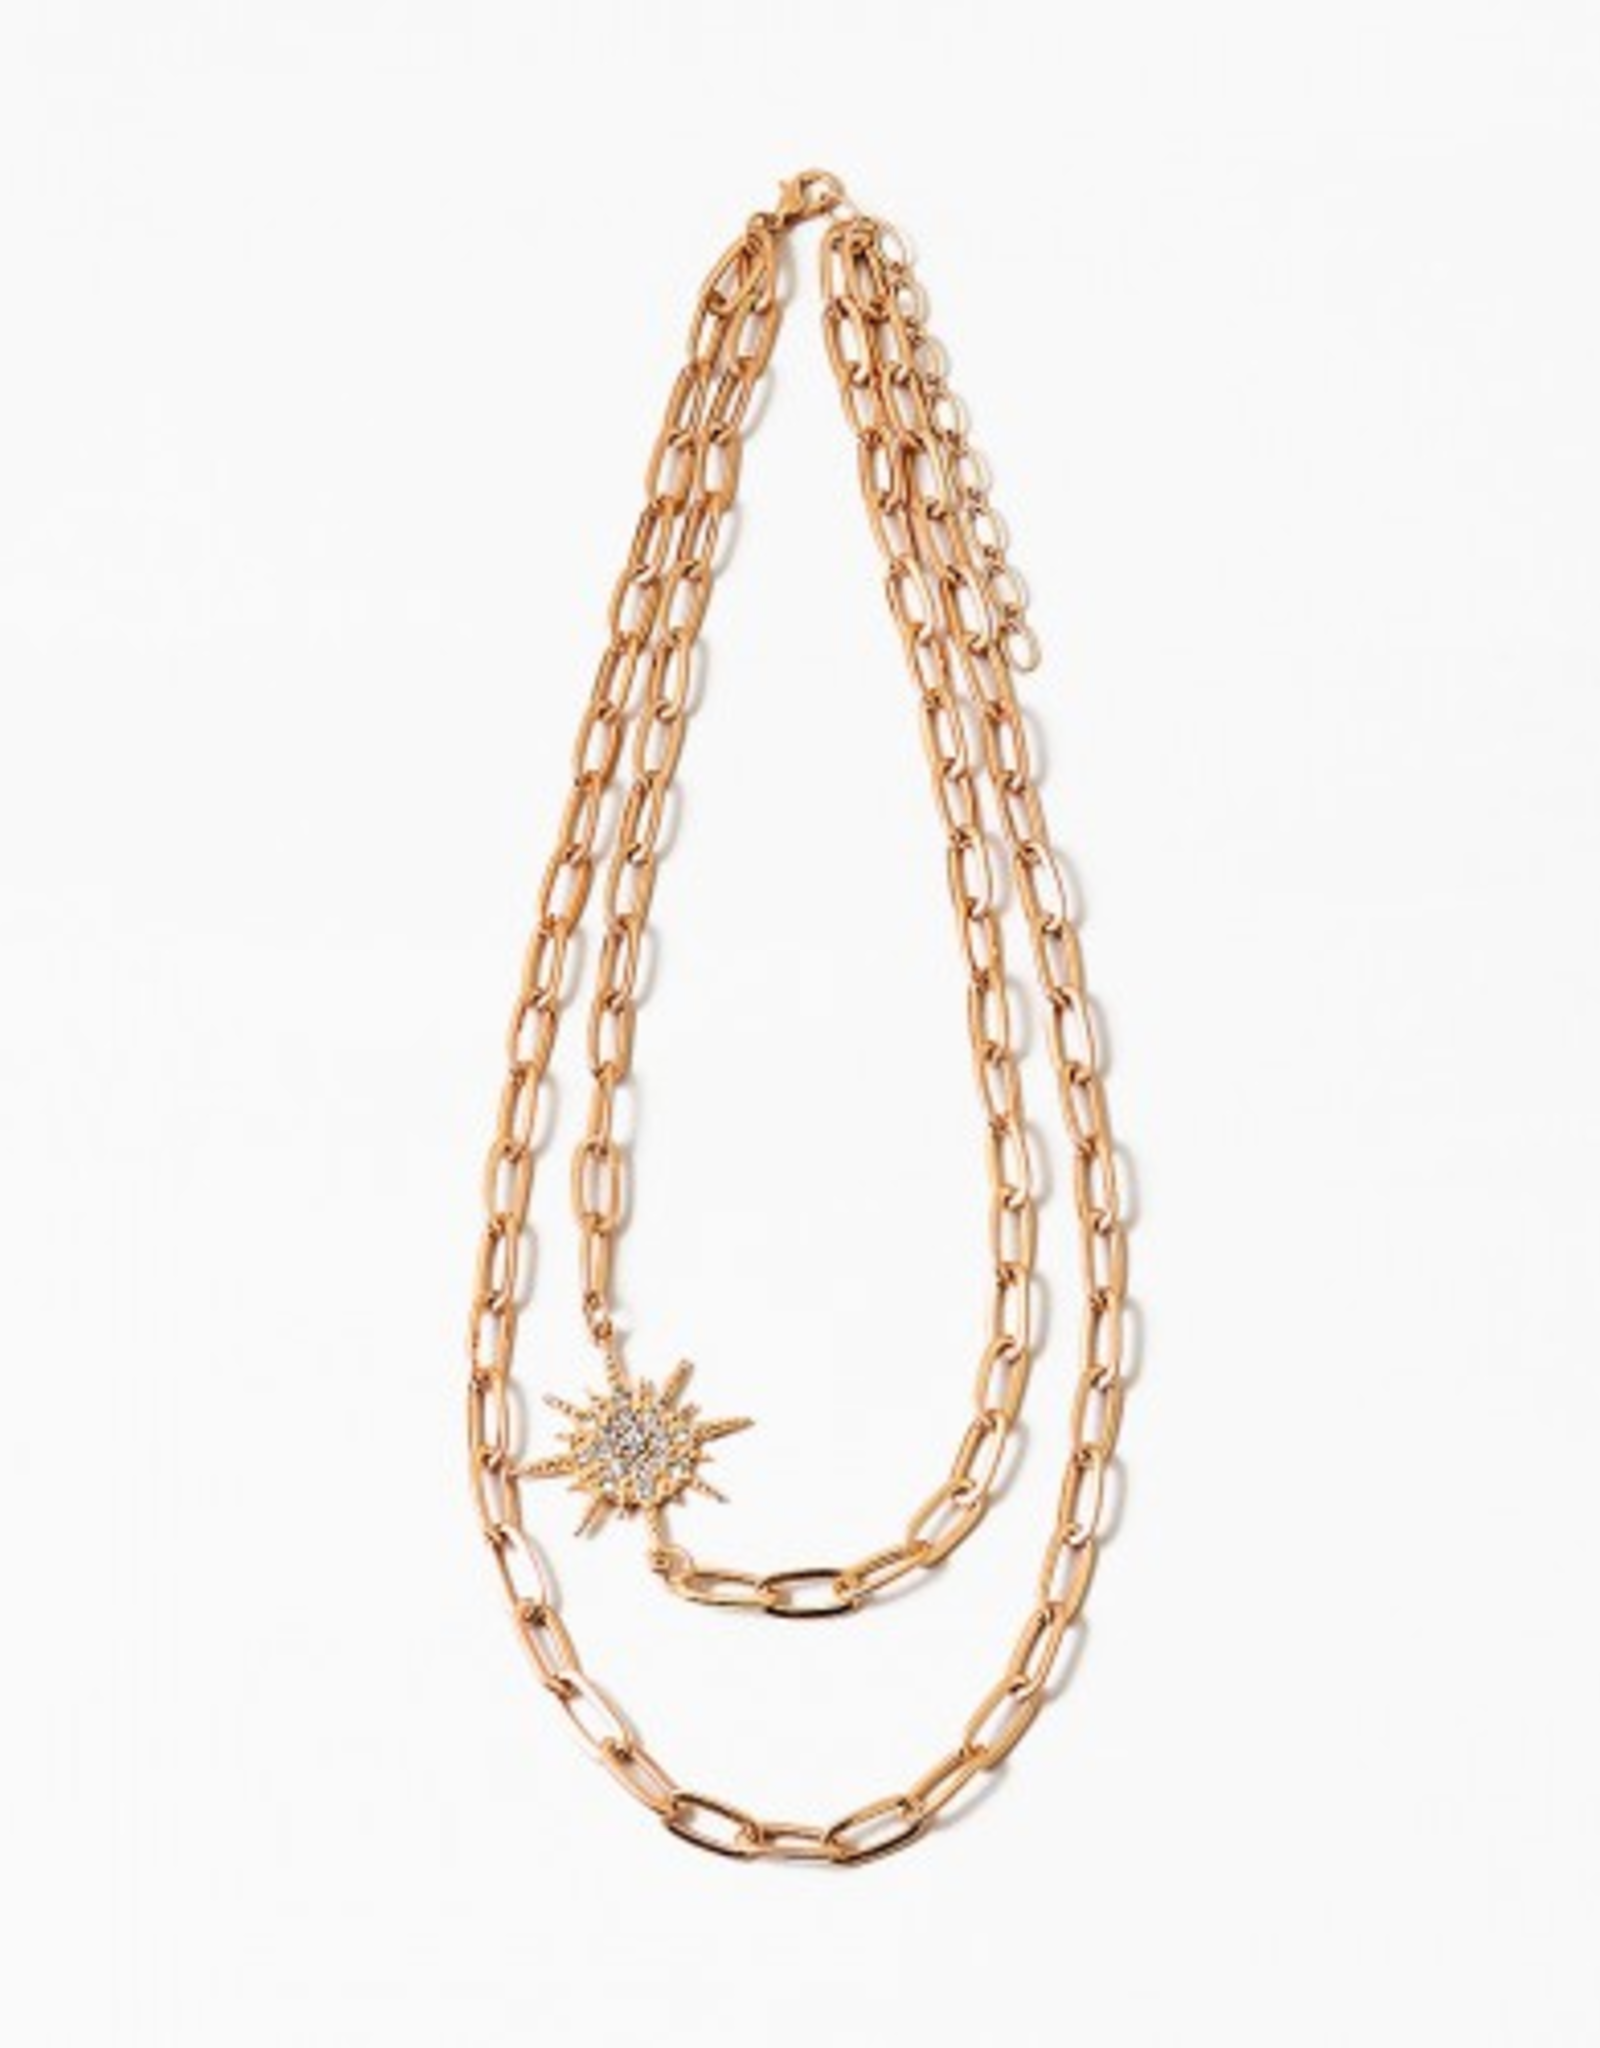 Blue Suede Jewels Layered Chain Starburst Necklace